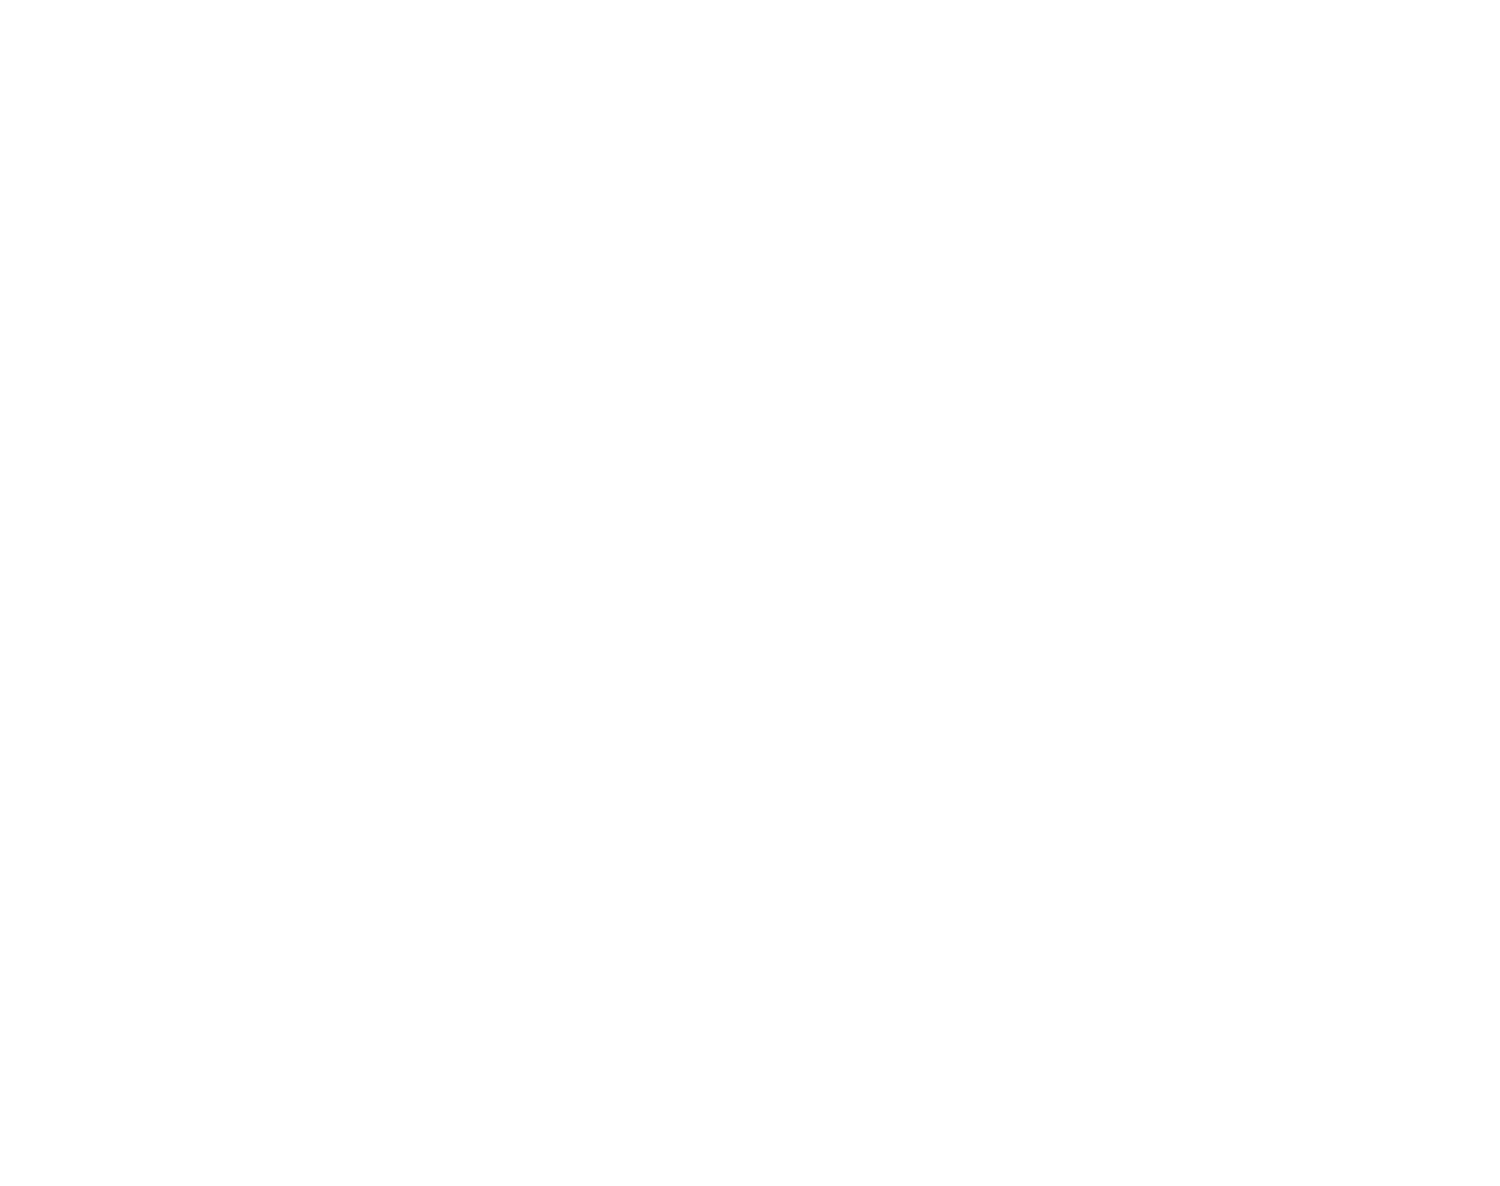 employment u2014 keke u0027s breakfast cafe